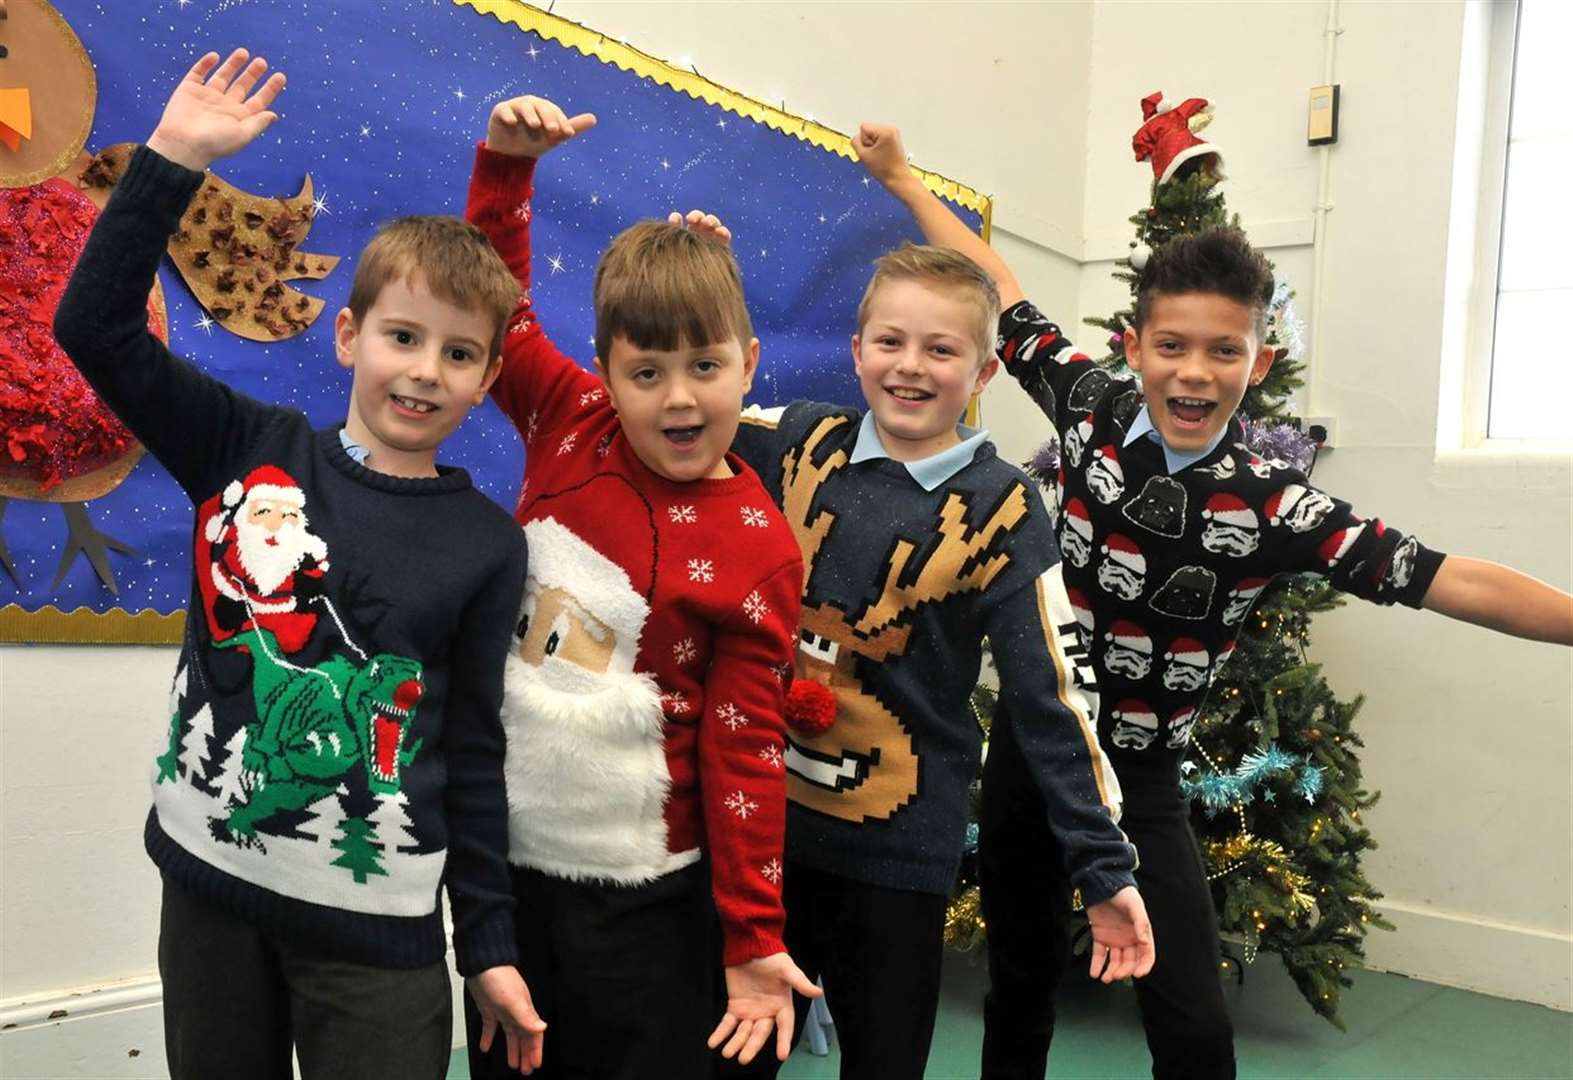 It's beginning to look a lot like Christmas at this primary school